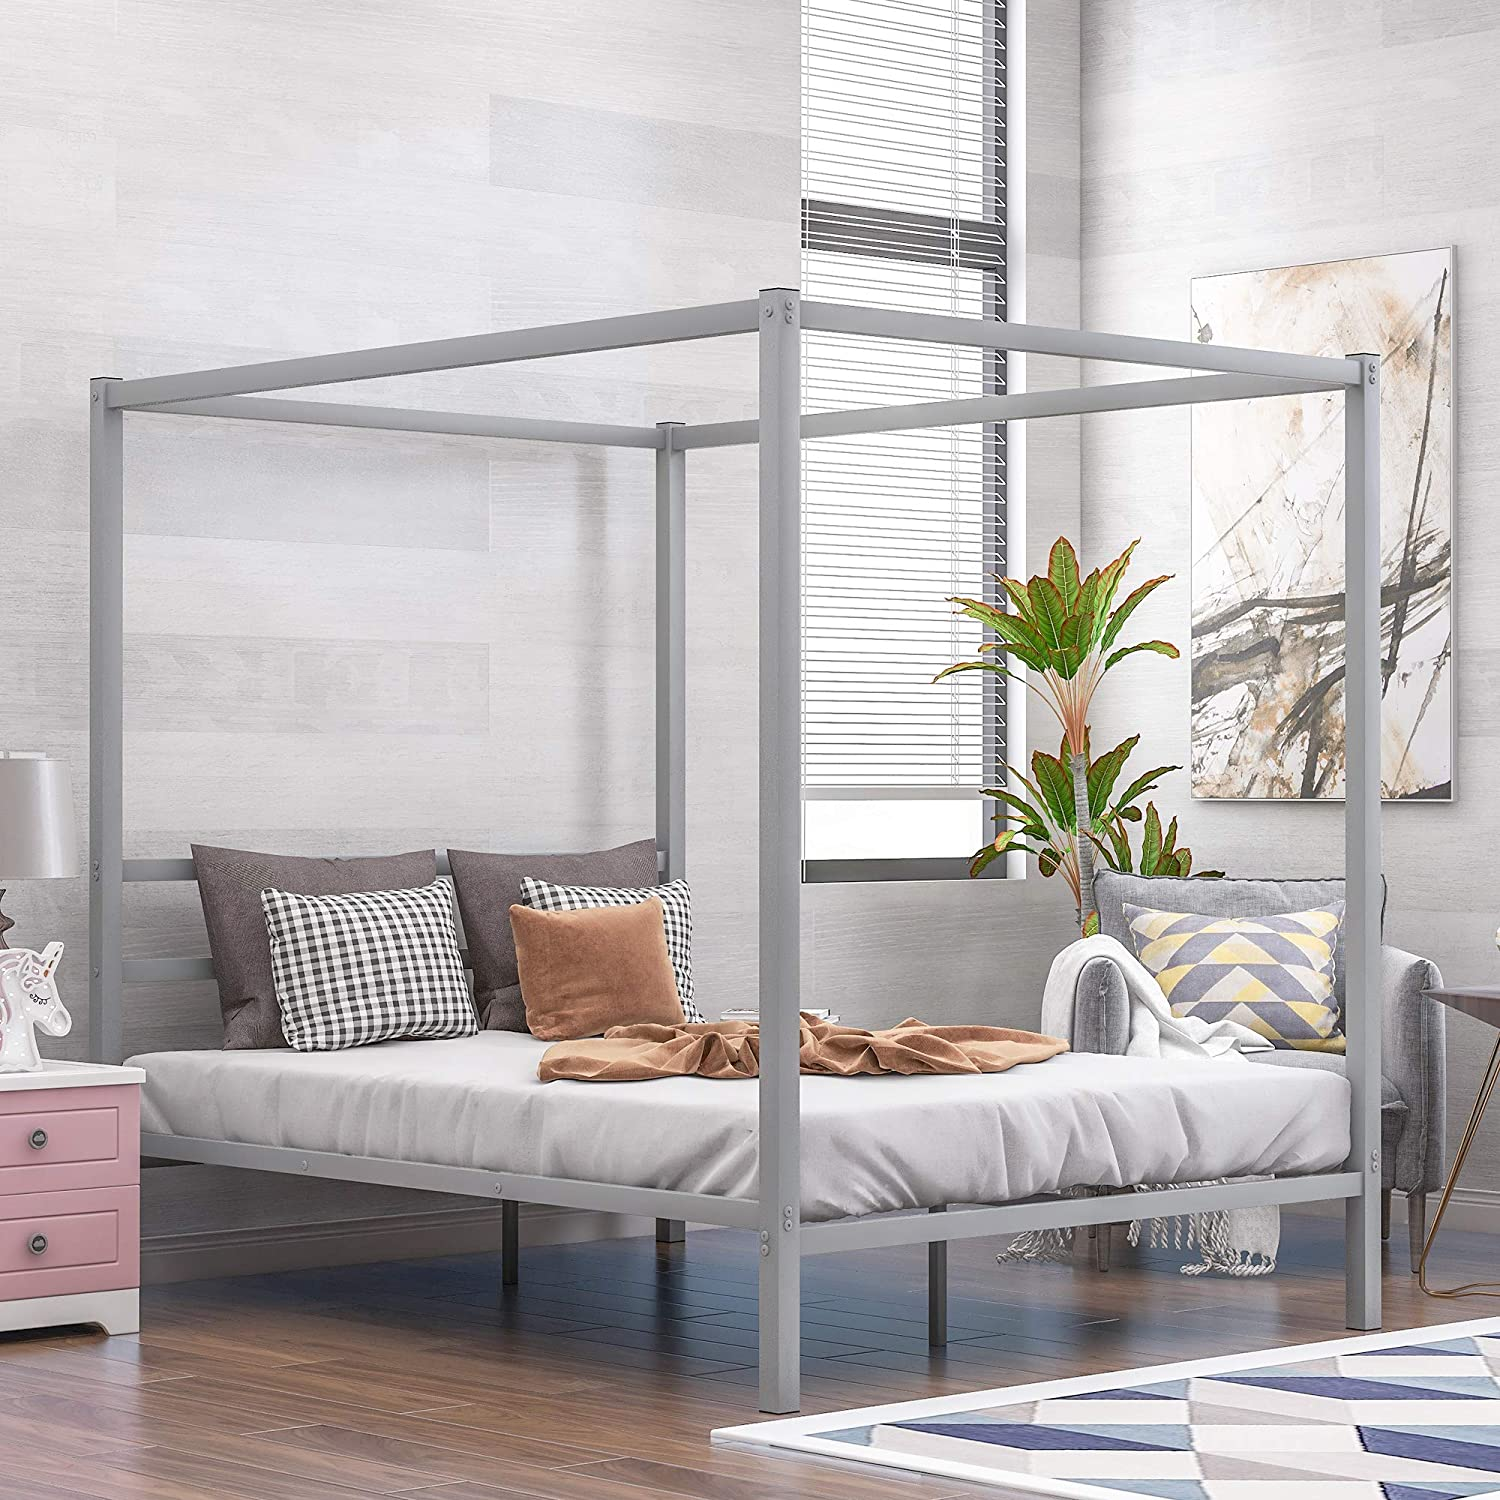 Queen Canopy Bed Frame, Metal Framed Canopy Platform Bed with Built-in Headboard, No Box Spring Needed, Silver